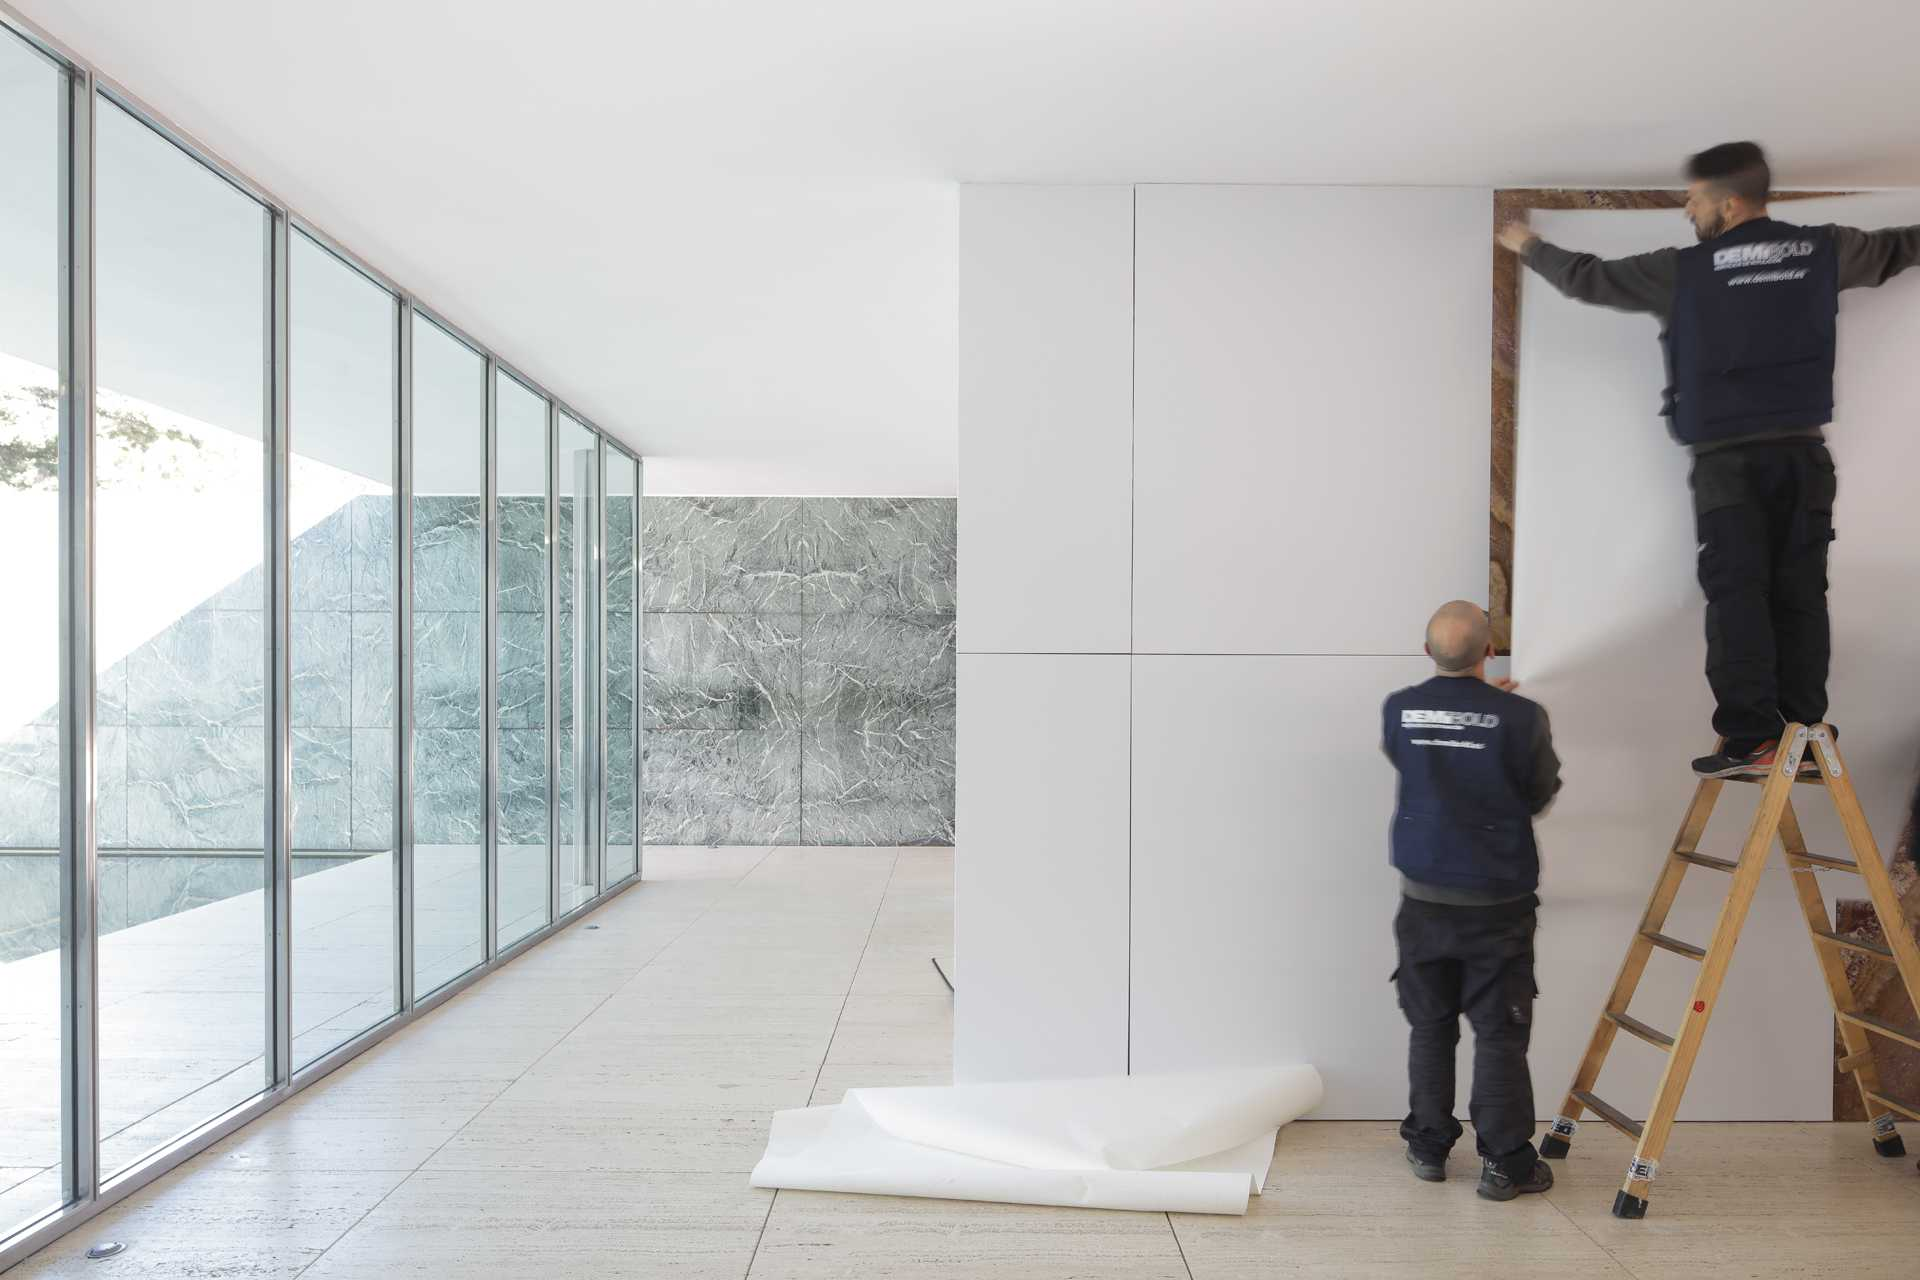 Mies Missing Materiality  - 43 06 36